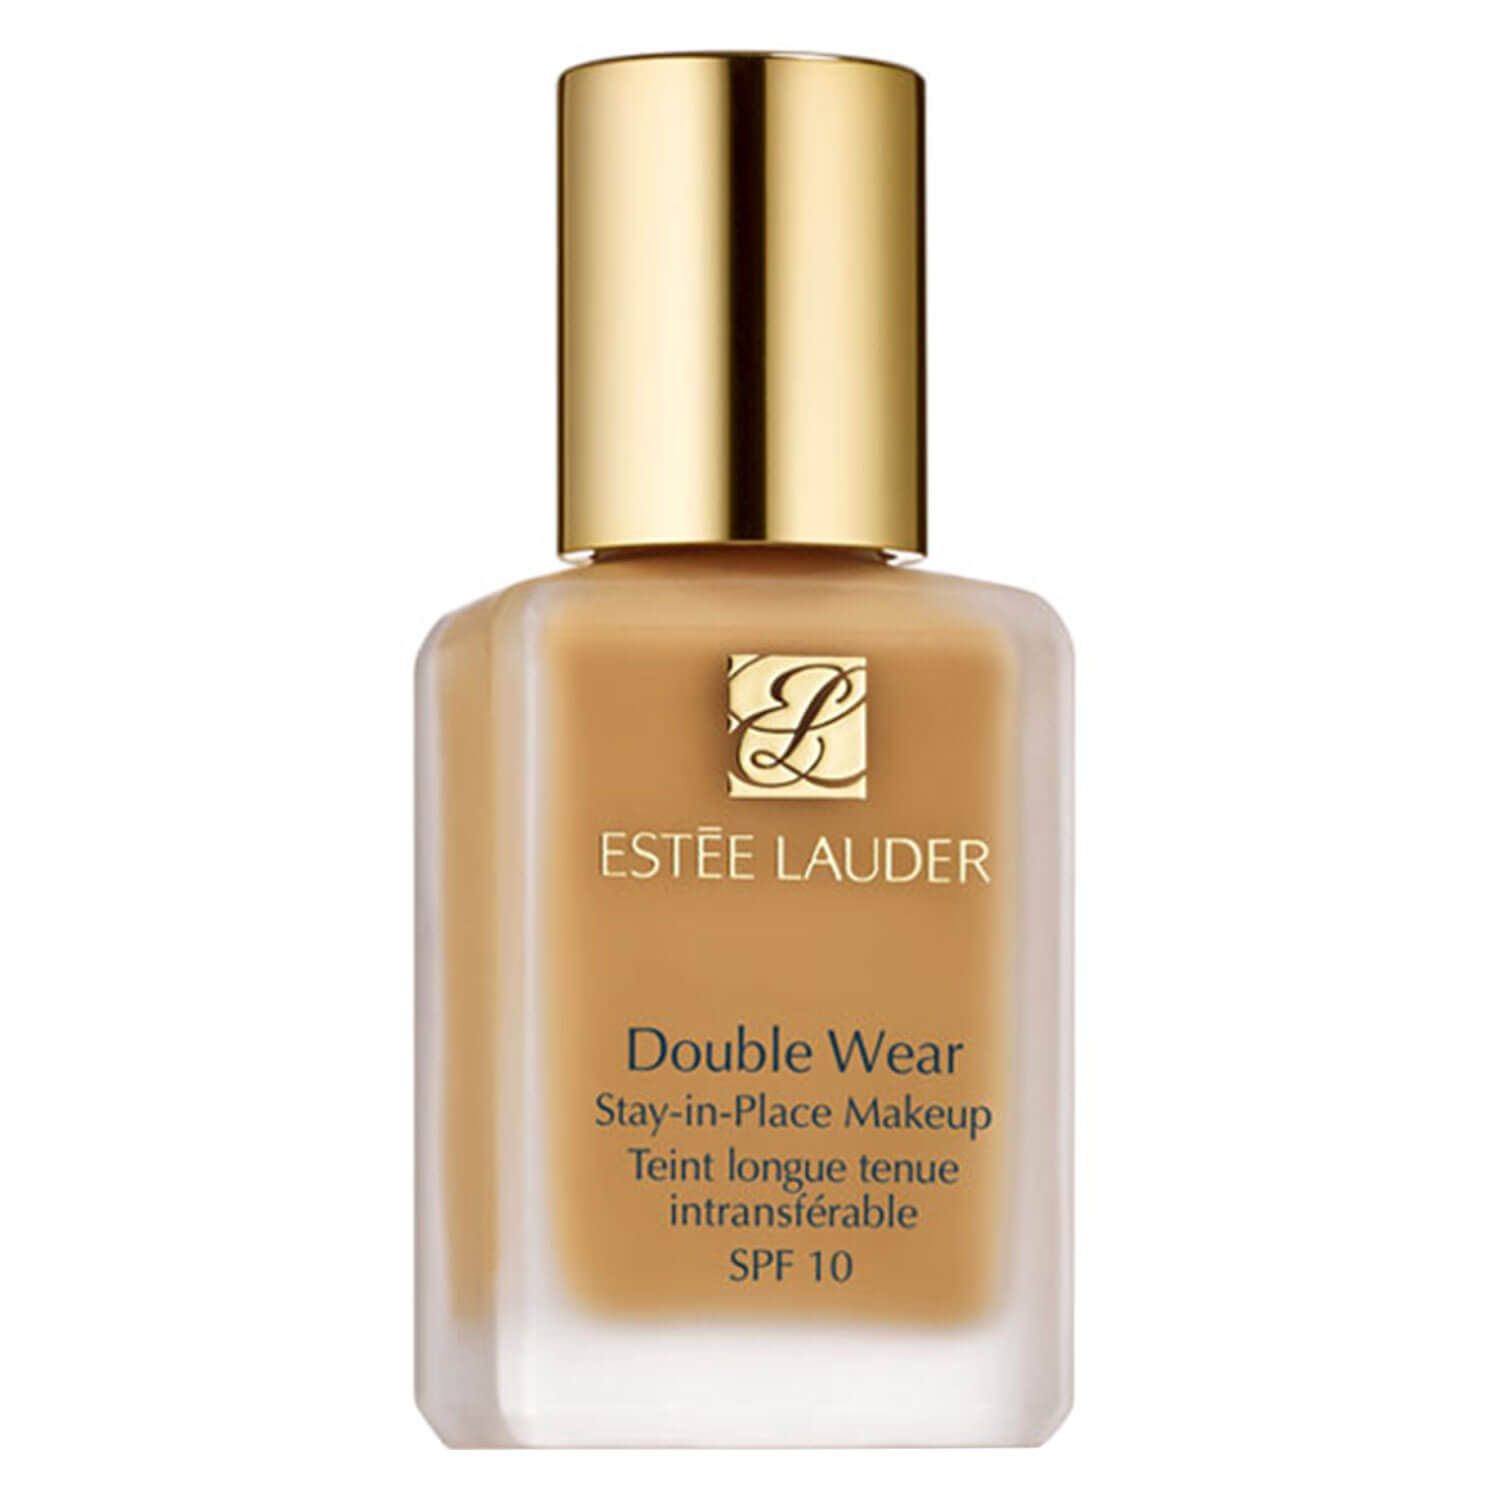 Double Wear - Stay-in-Place Makeup SPF10 Wheat 3N2